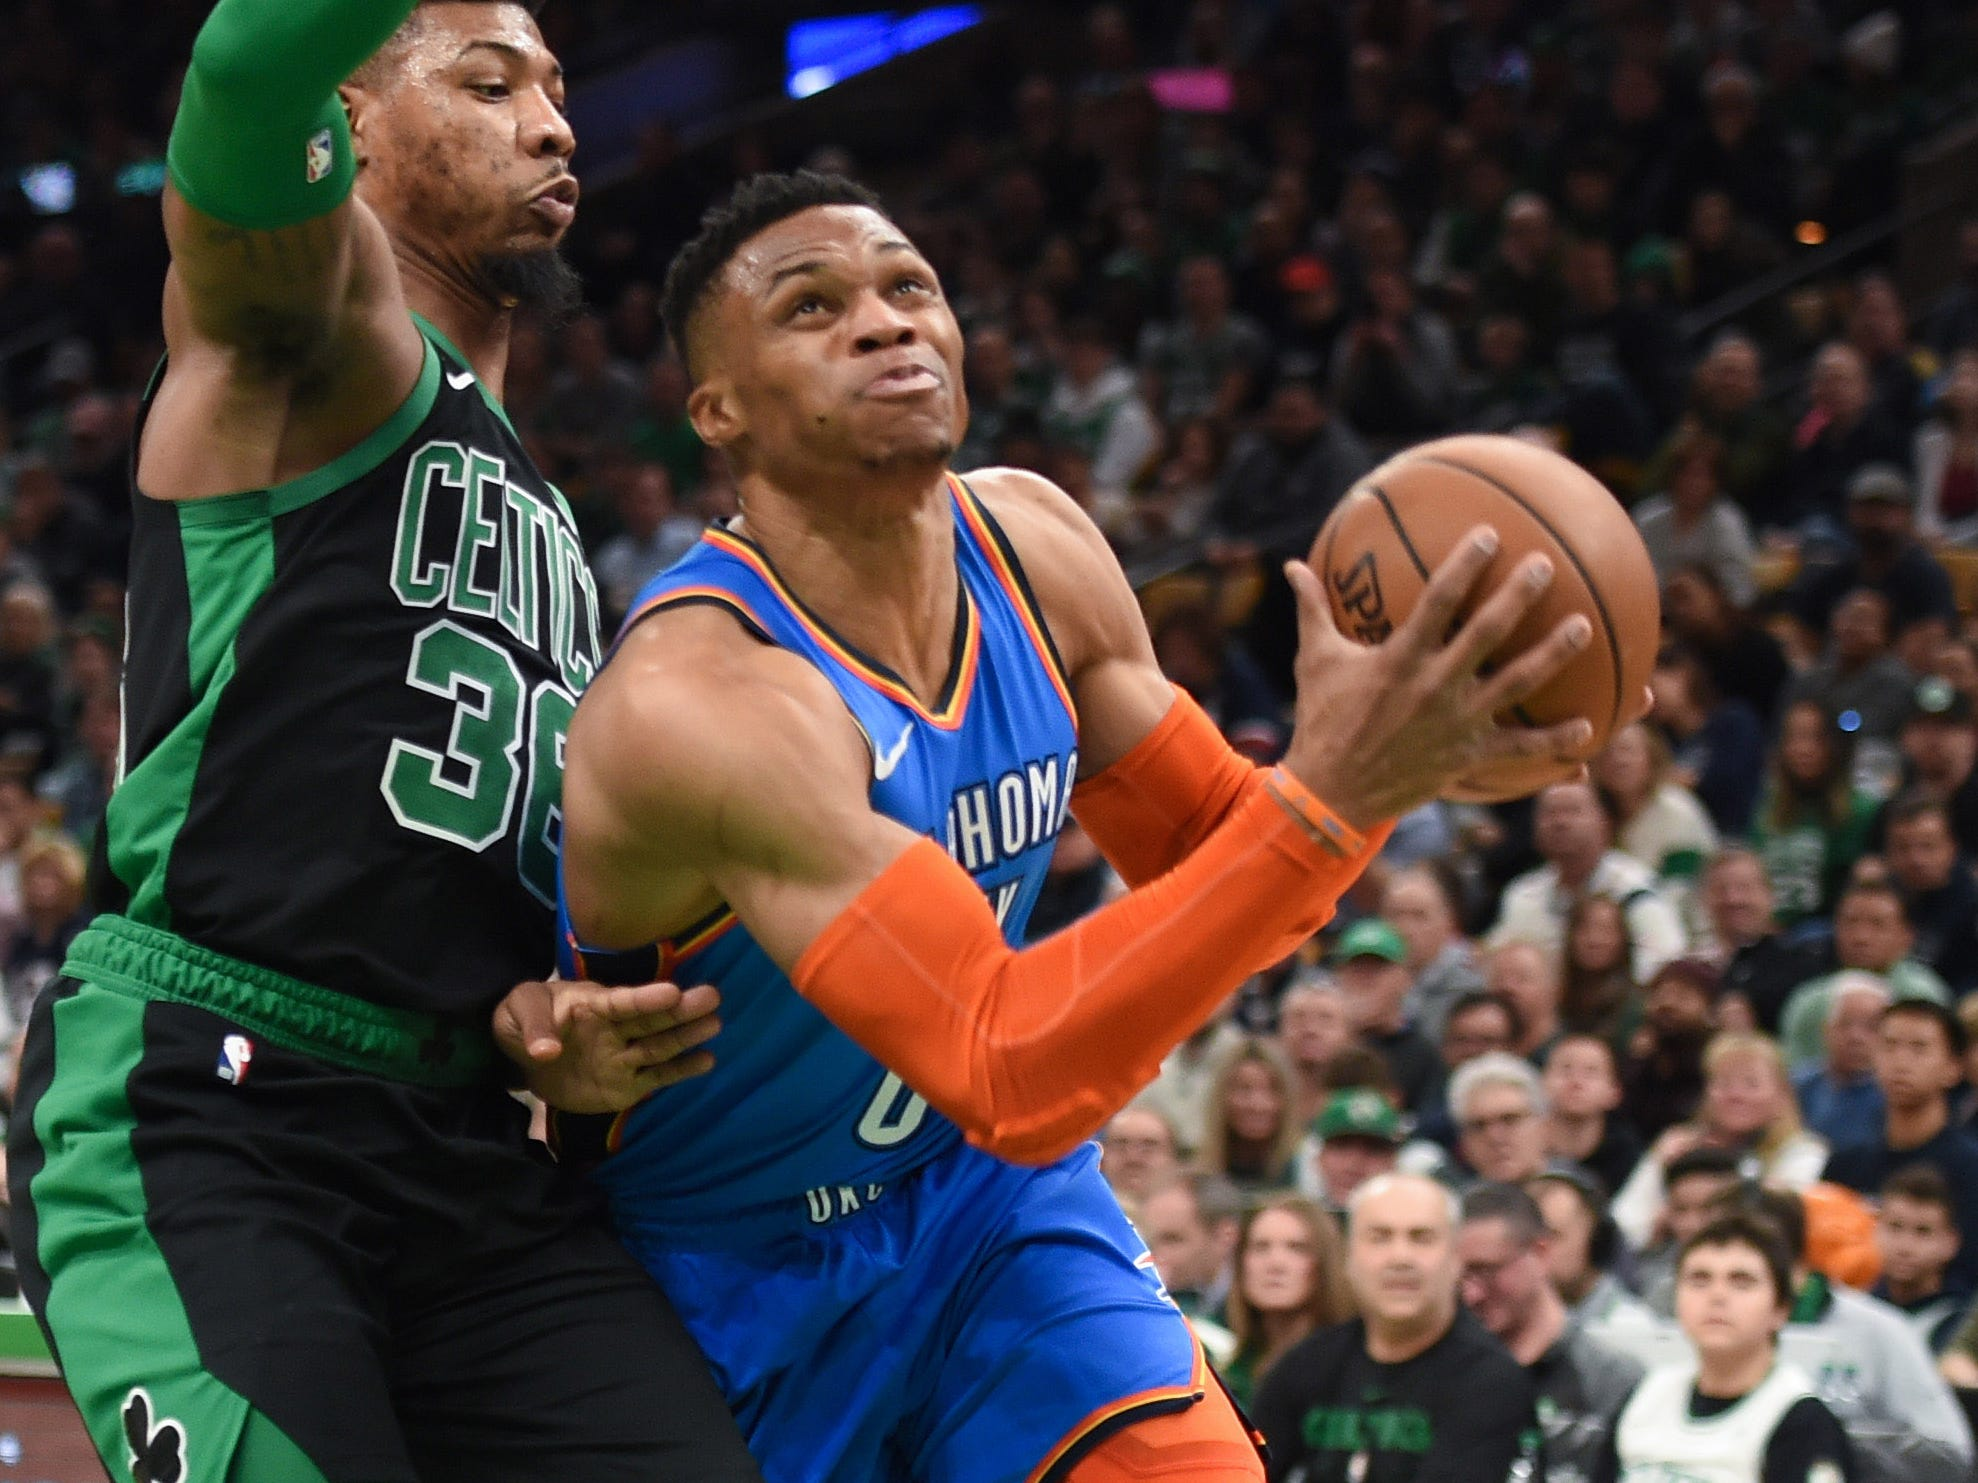 72. Russell Westbrook, Thunder (Feb. 3): 22 points, 16 assists, 12 rebounds in 134-129 loss to Celtics (19th of season).